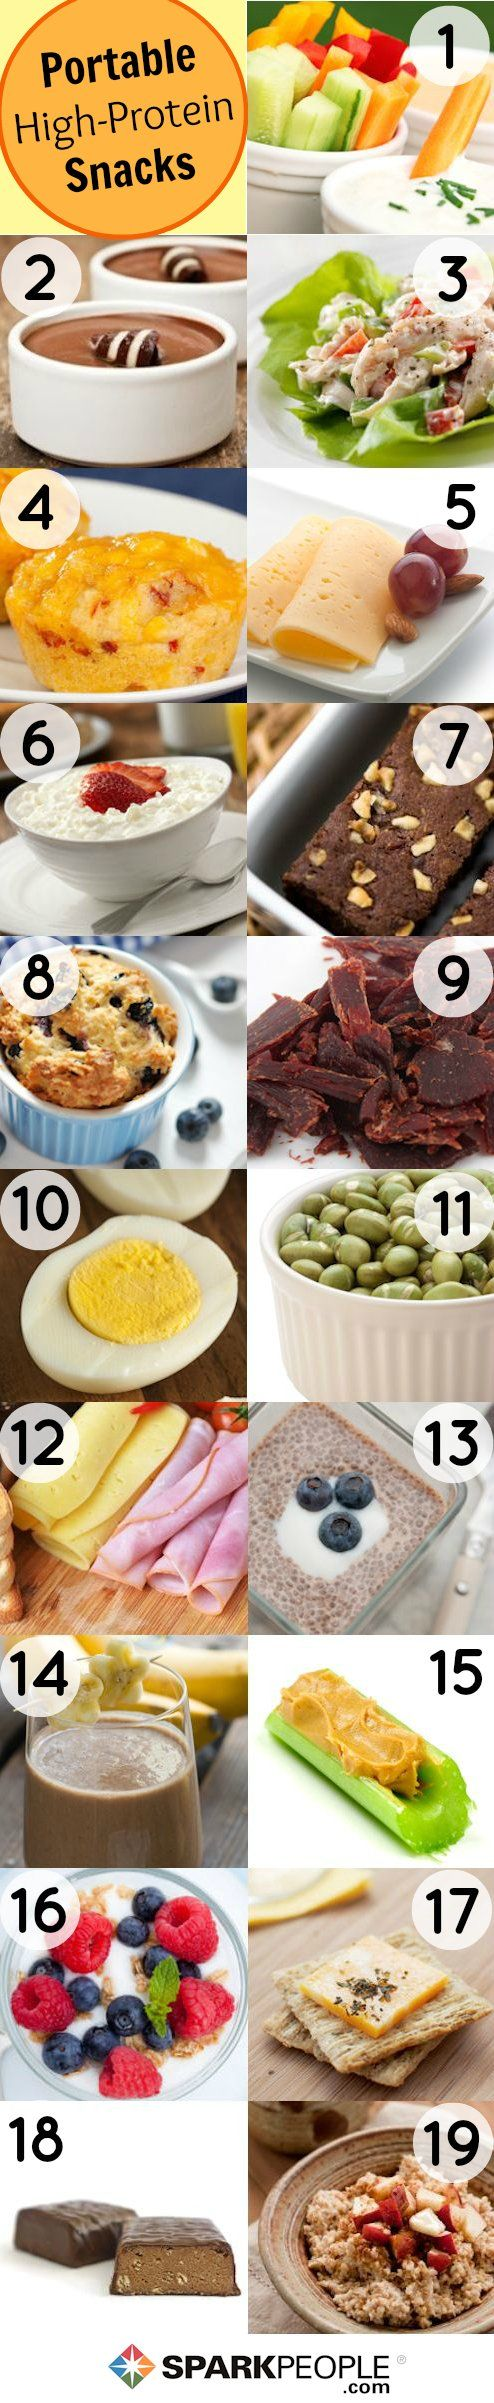 19 Portable Protein-Packed Snacks | SparkPeople